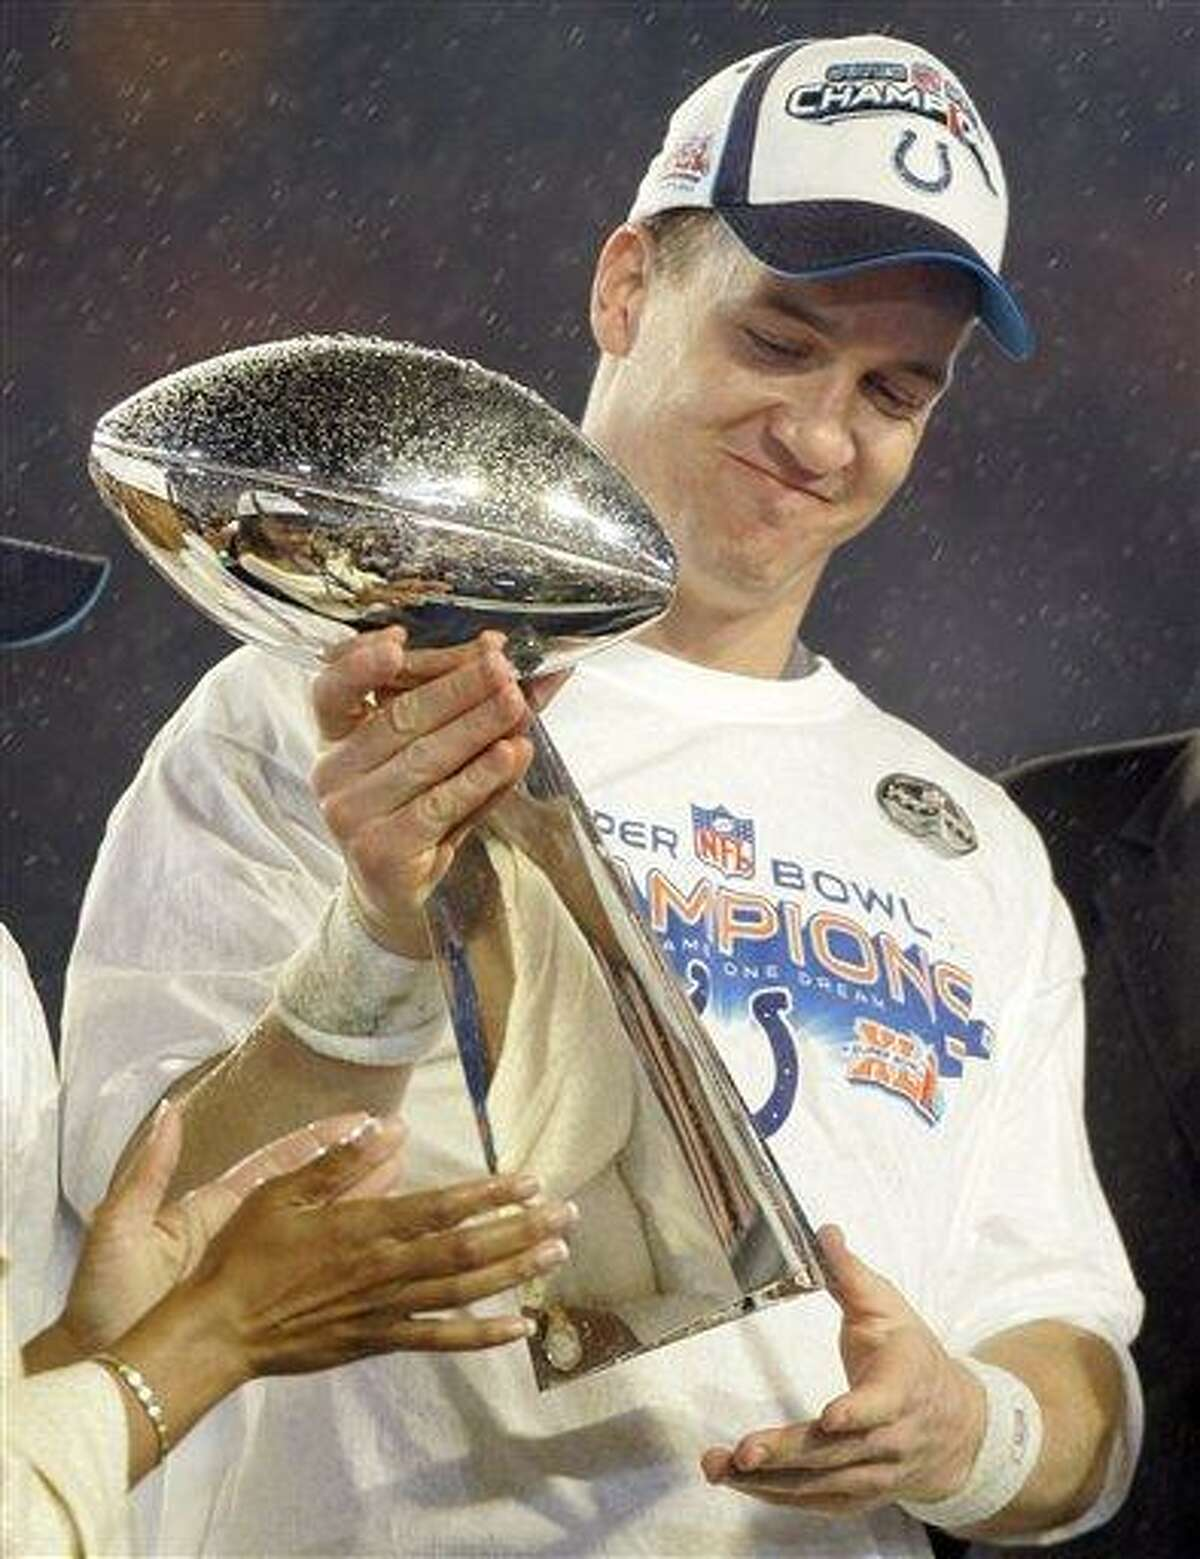 FILE - In this Feb. 4, 2007 file photo, Indianapolis Colts' Peyton Manning holds the Vince Lombardi Trophy after the Colts' 29-17 win over the Chicago Bears in the Super Bowl XLI football game at Dolphin Stadium in Miami. While fans from San Francisco to Denver to Tennessee can picture Peyton Manning hoisting the Lombardi Trophy in their team's jersey just as he did for Indianapolis five years ago, history offers a cautionary tale. No quarterback in NFL history has ever been the Super Bowl winner for two franchises. (AP Photo/Amy Sancetta, File)